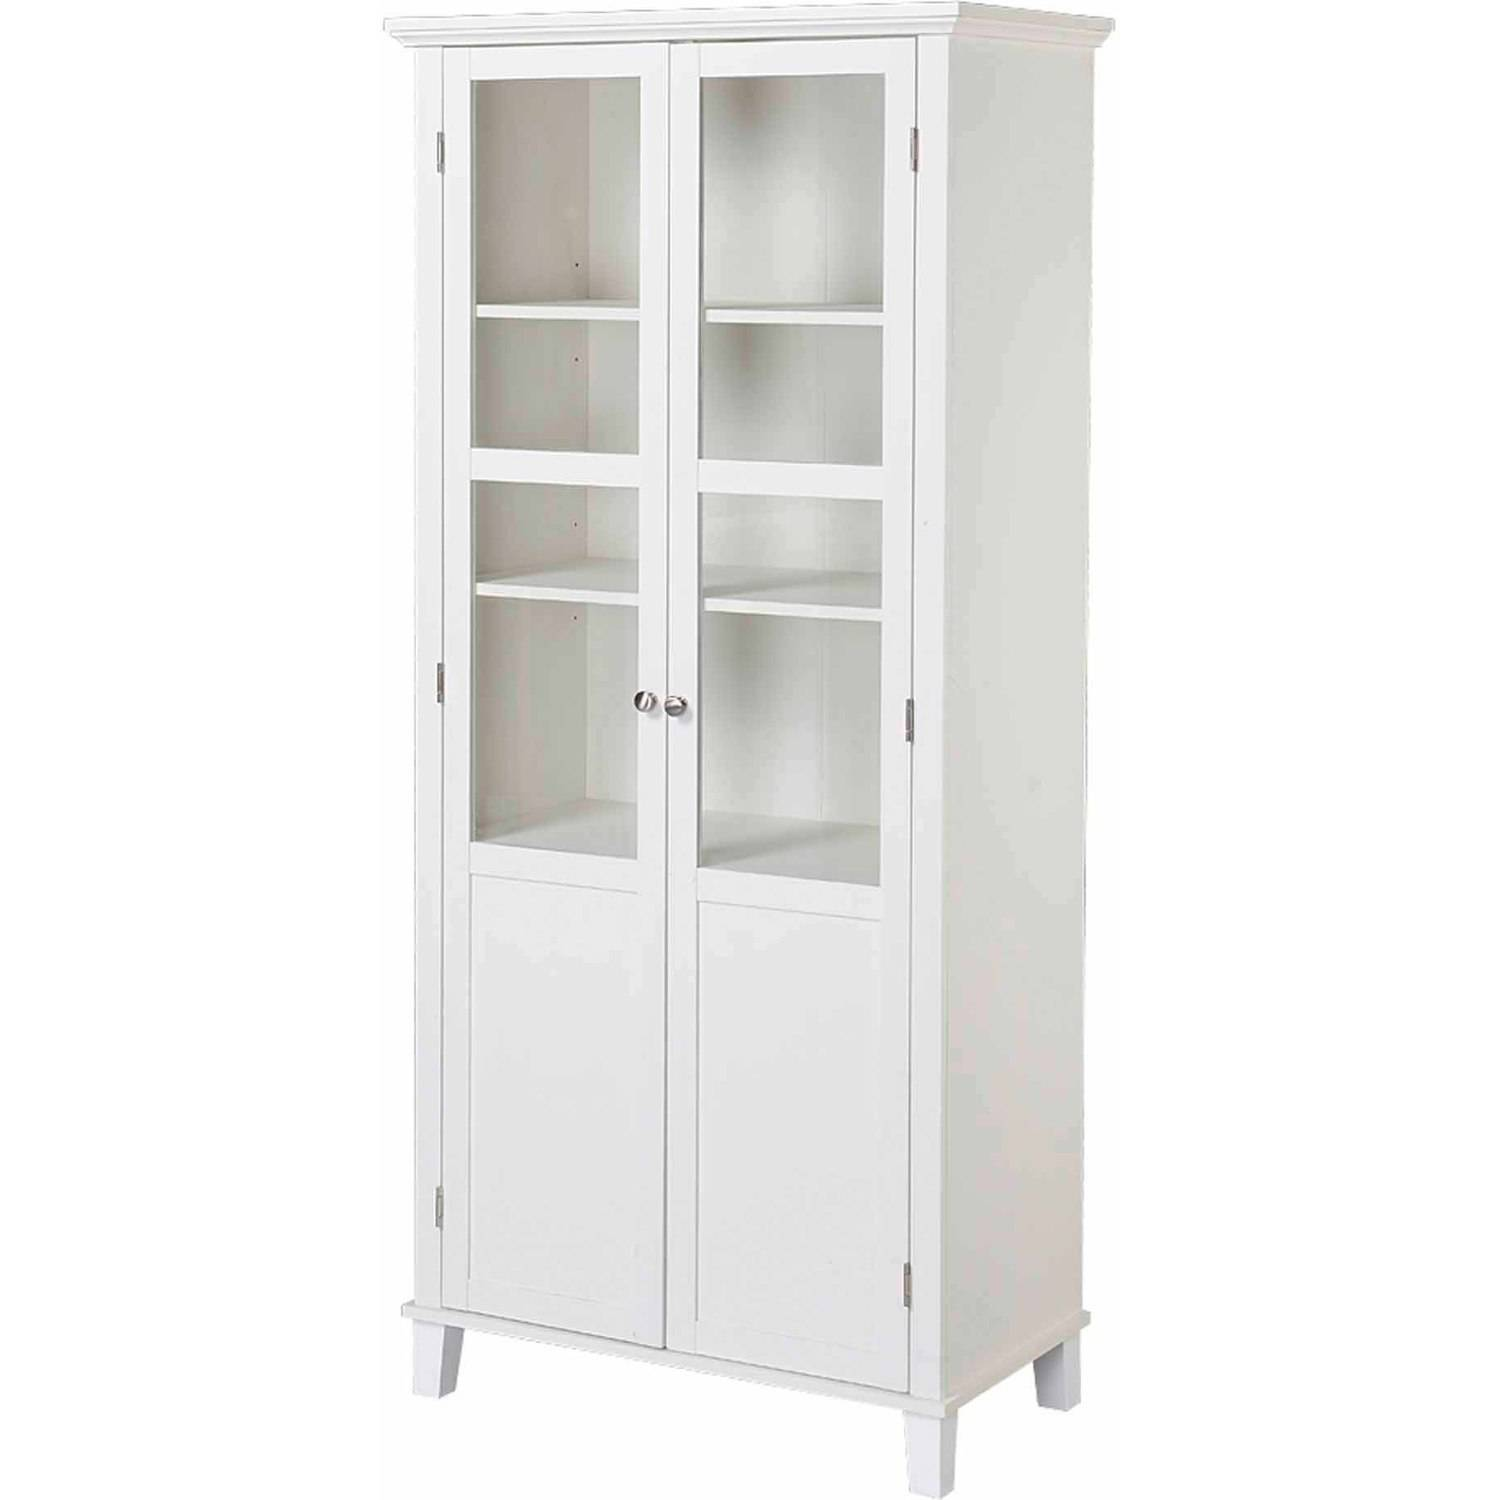 Wooden Storage Cabinets With Doors Homestar 2 Door Storage Cabinet Walmartcom